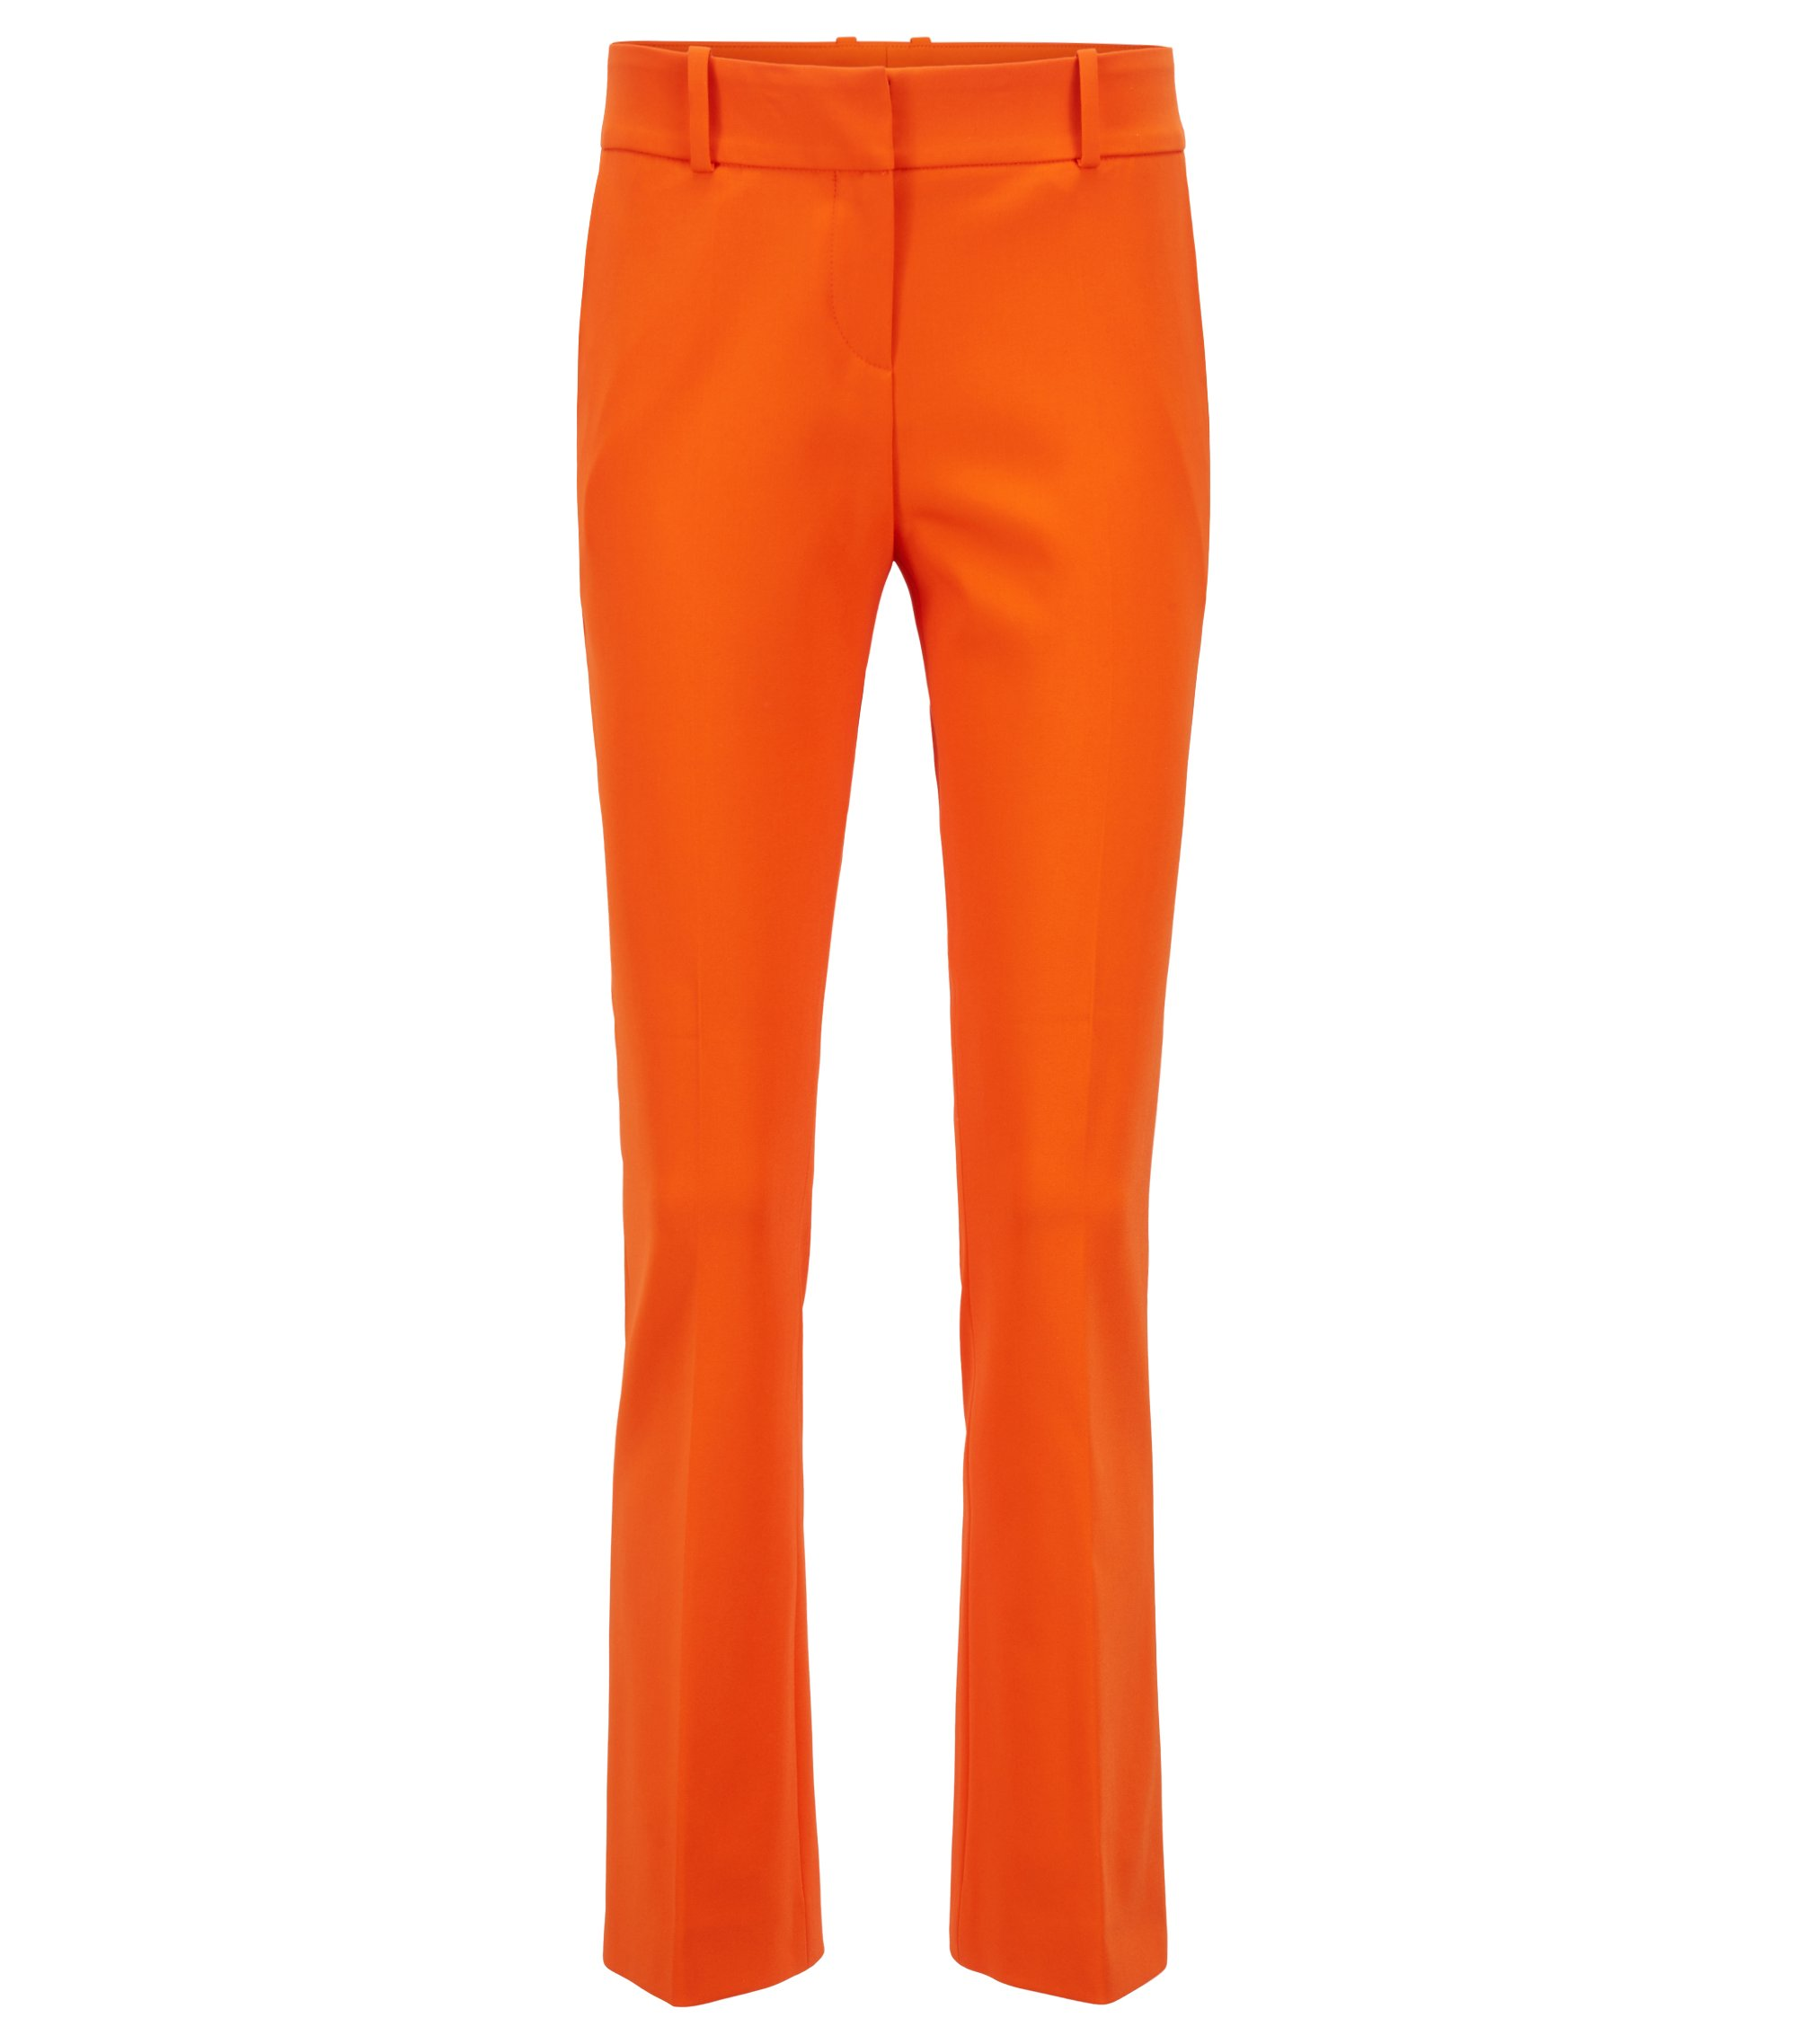 Regular-Fit Hose aus elastischem Schurwoll-Mix in Cropped-Länge, Orange